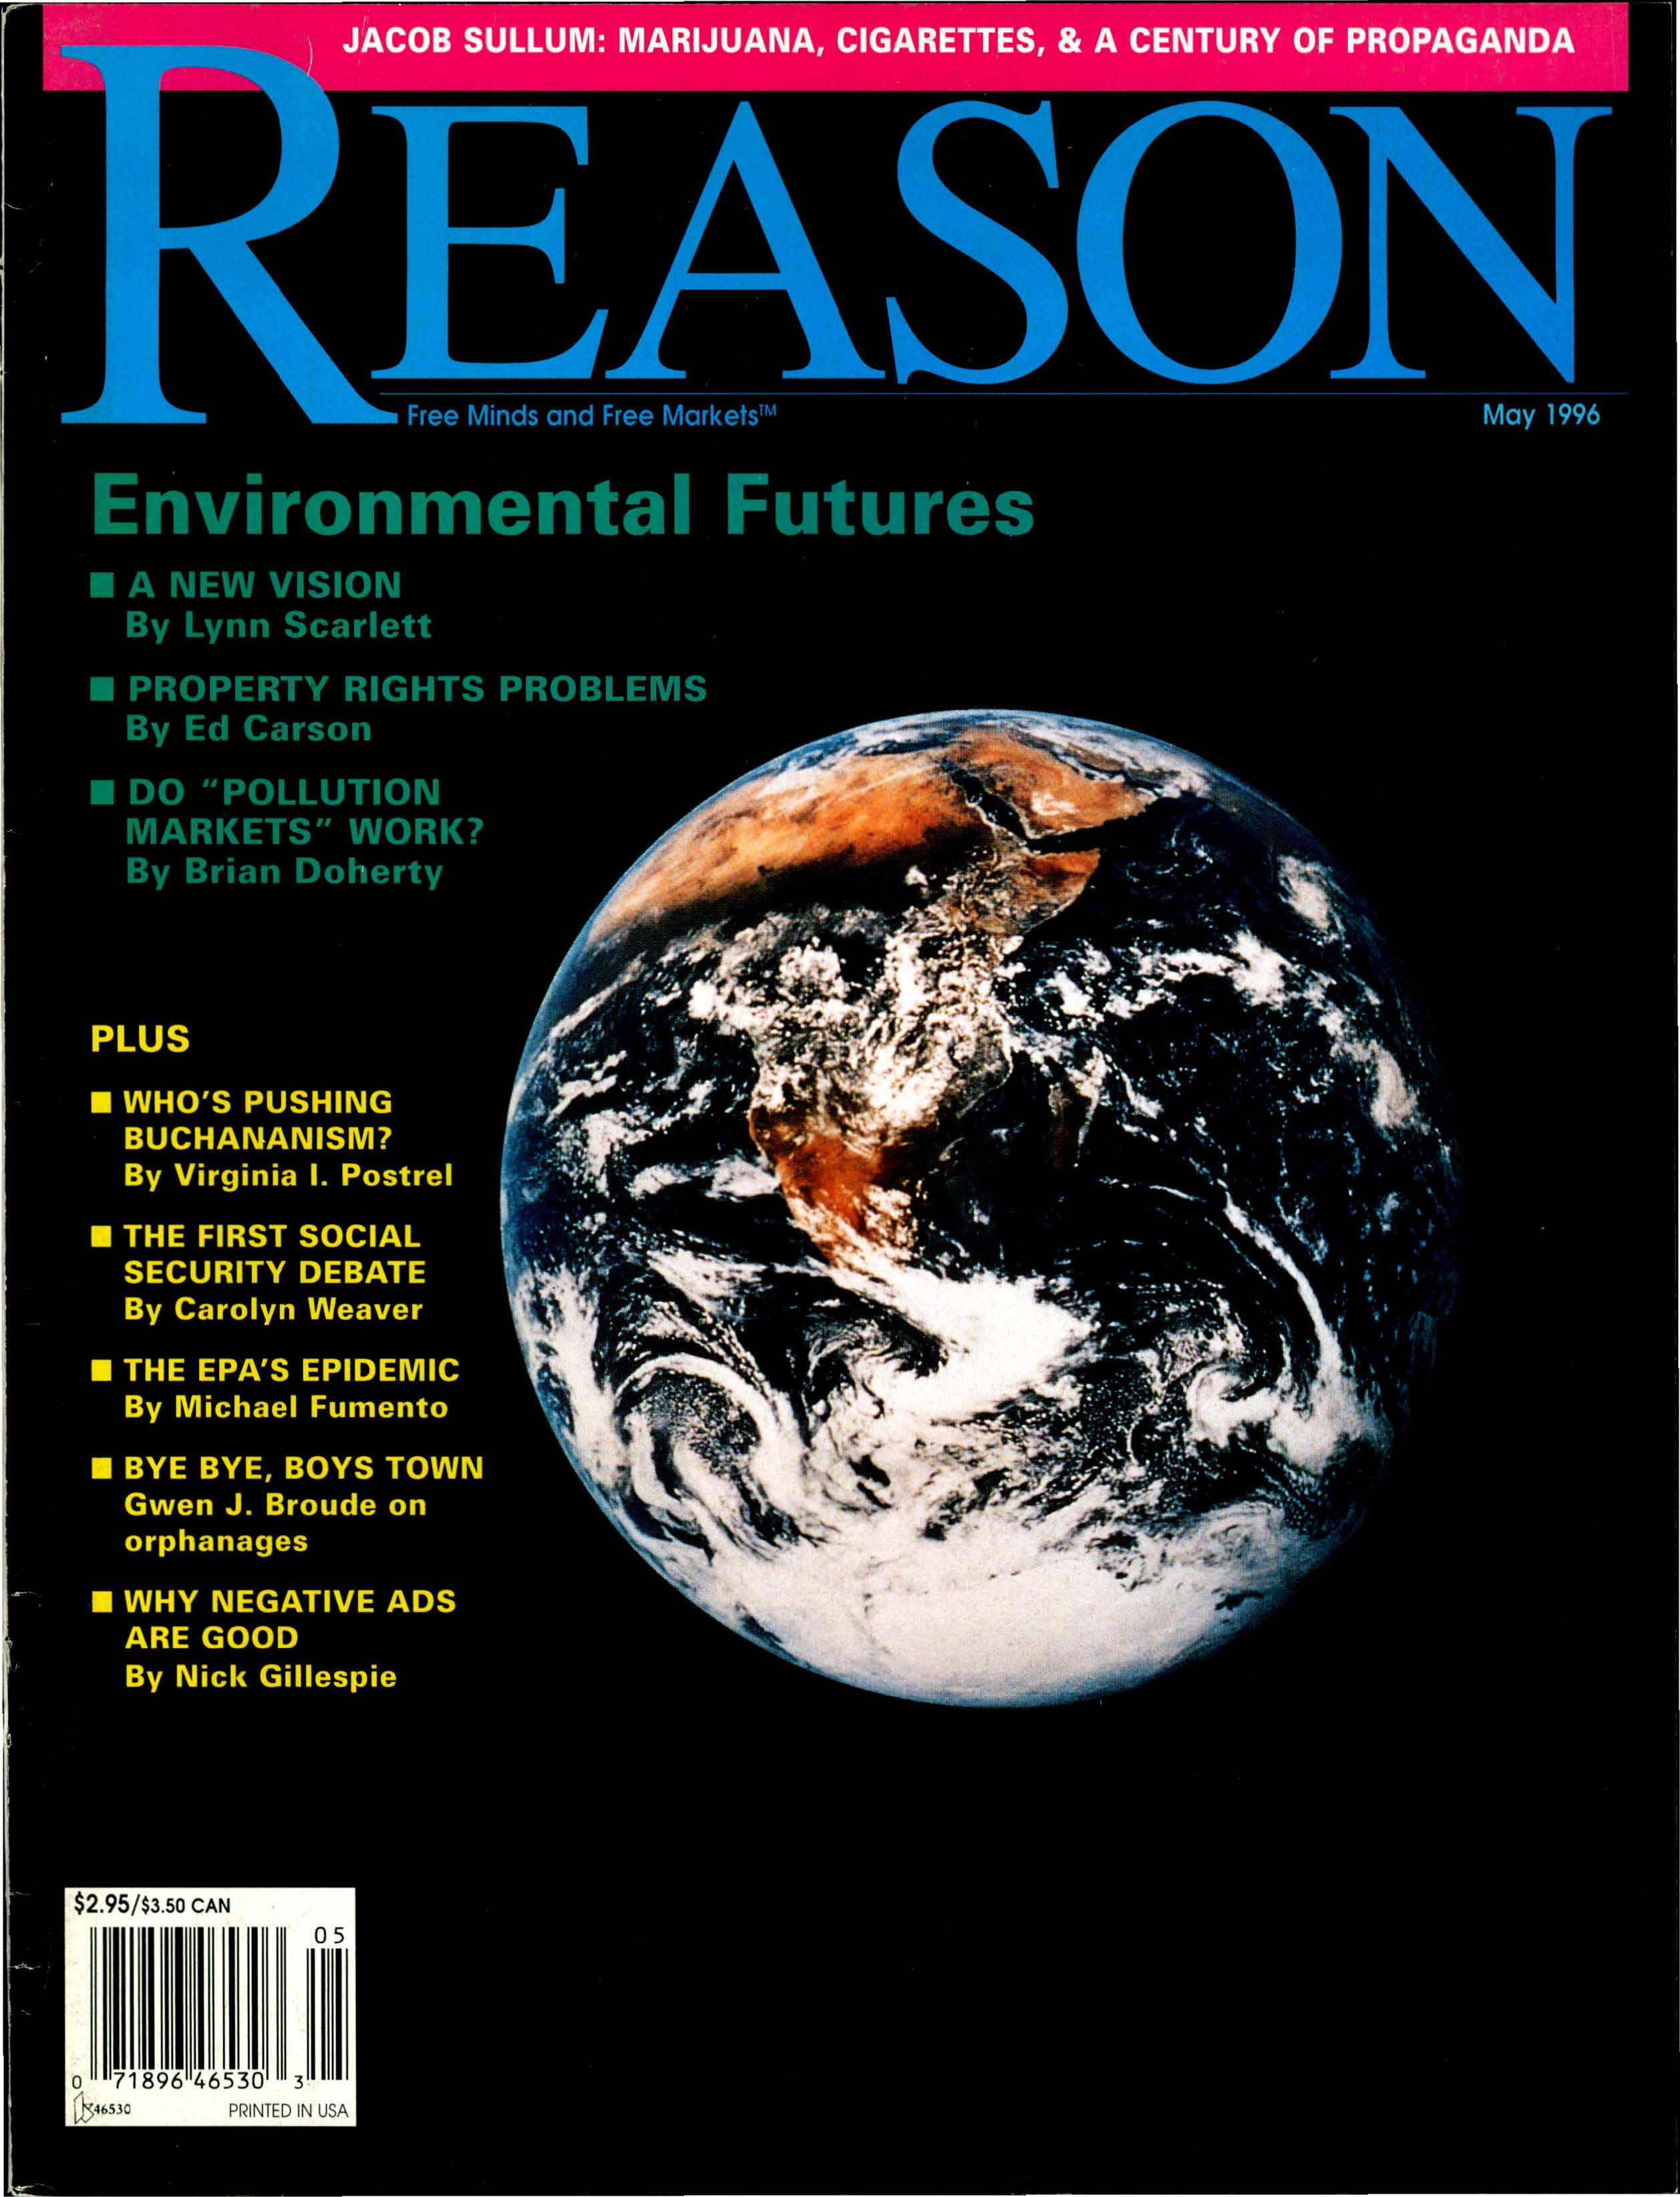 Reason Magazine, May 1996 cover image